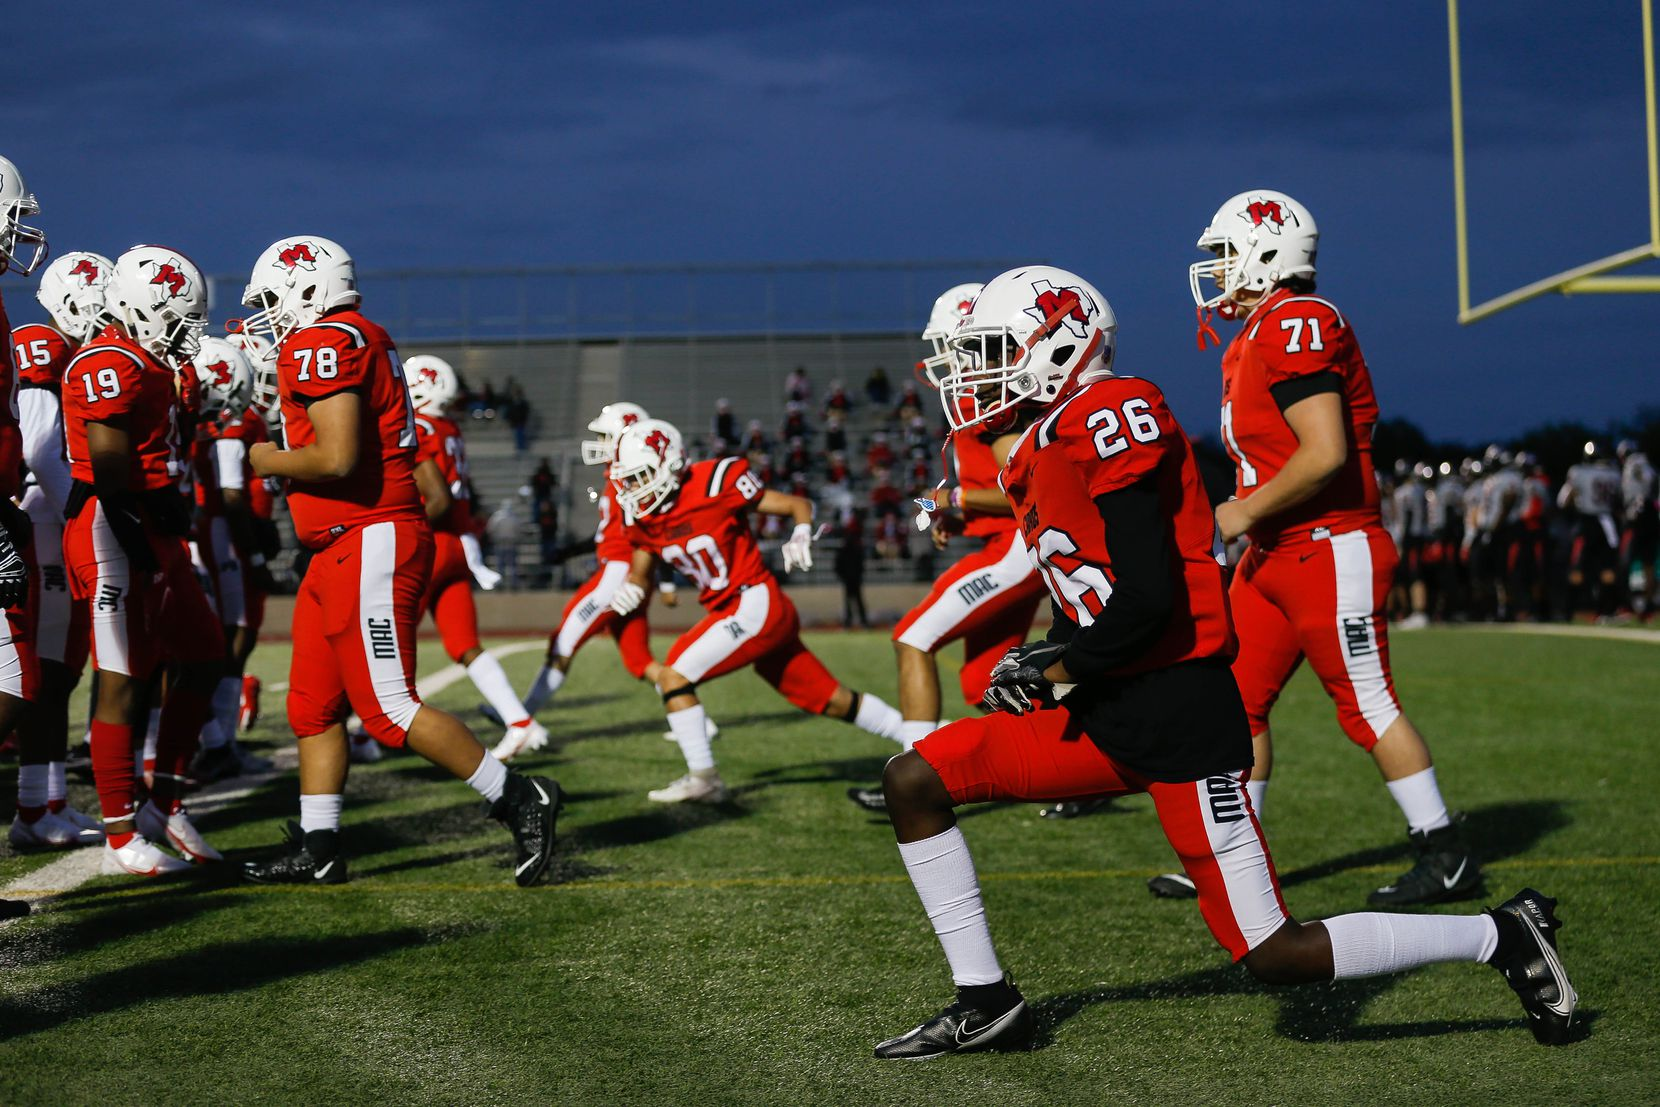 Irving MacArthur High School players stretch before a football game against Lake Highlands at Joy & Ralph Ellis Stadium in Irving on Friday, Oct. 23, 2020. (Juan Figueroa/ The Dallas Morning News)